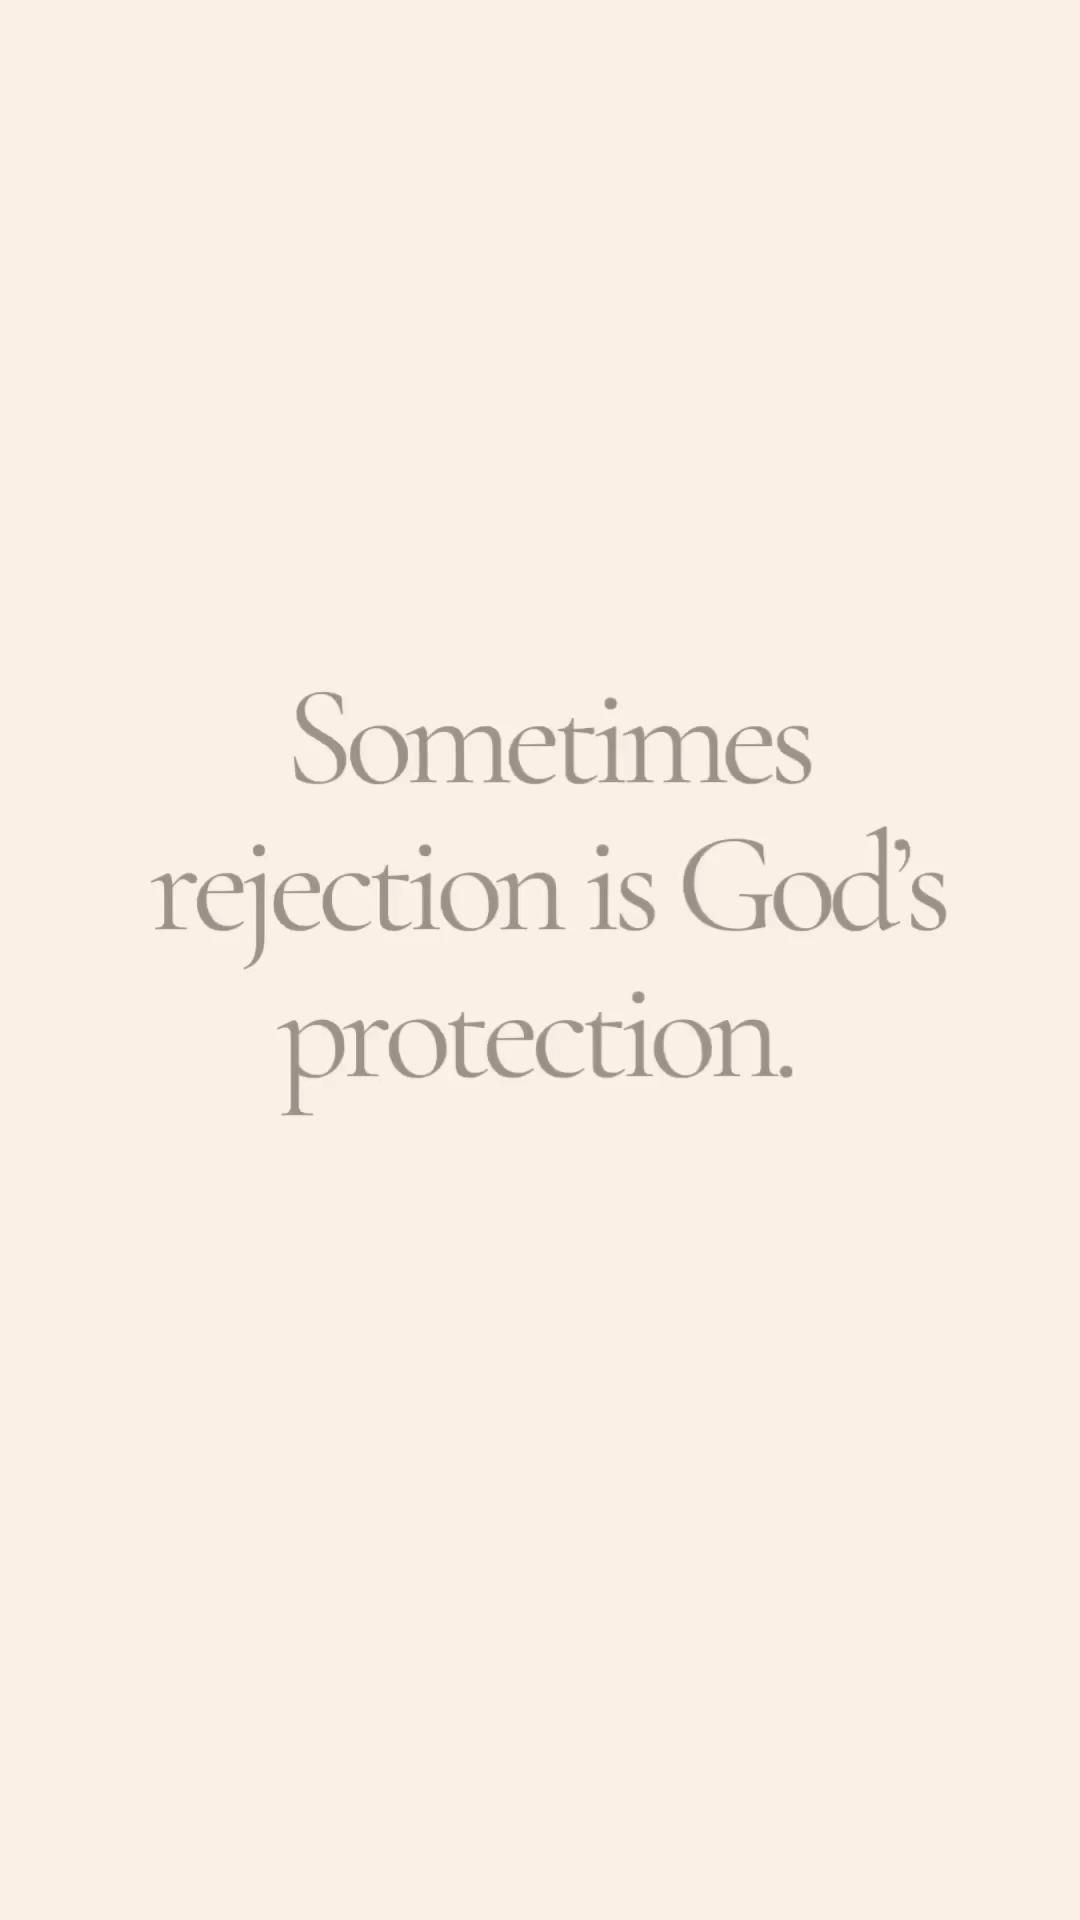 Protection and rejection